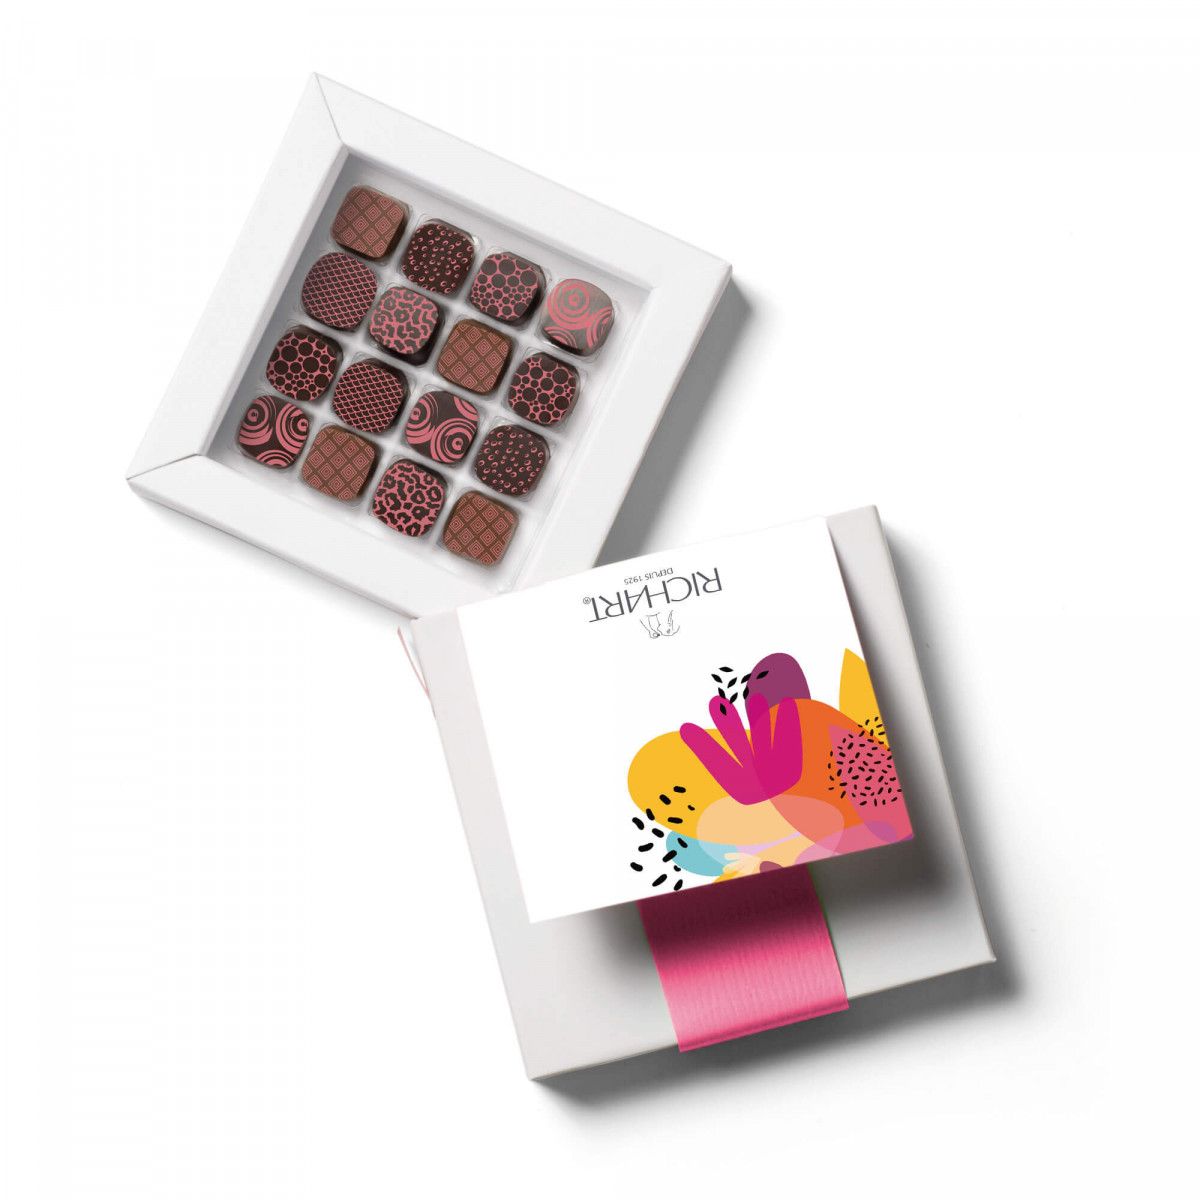 Petits RICHART Fruity Box of 16 filled chocolates